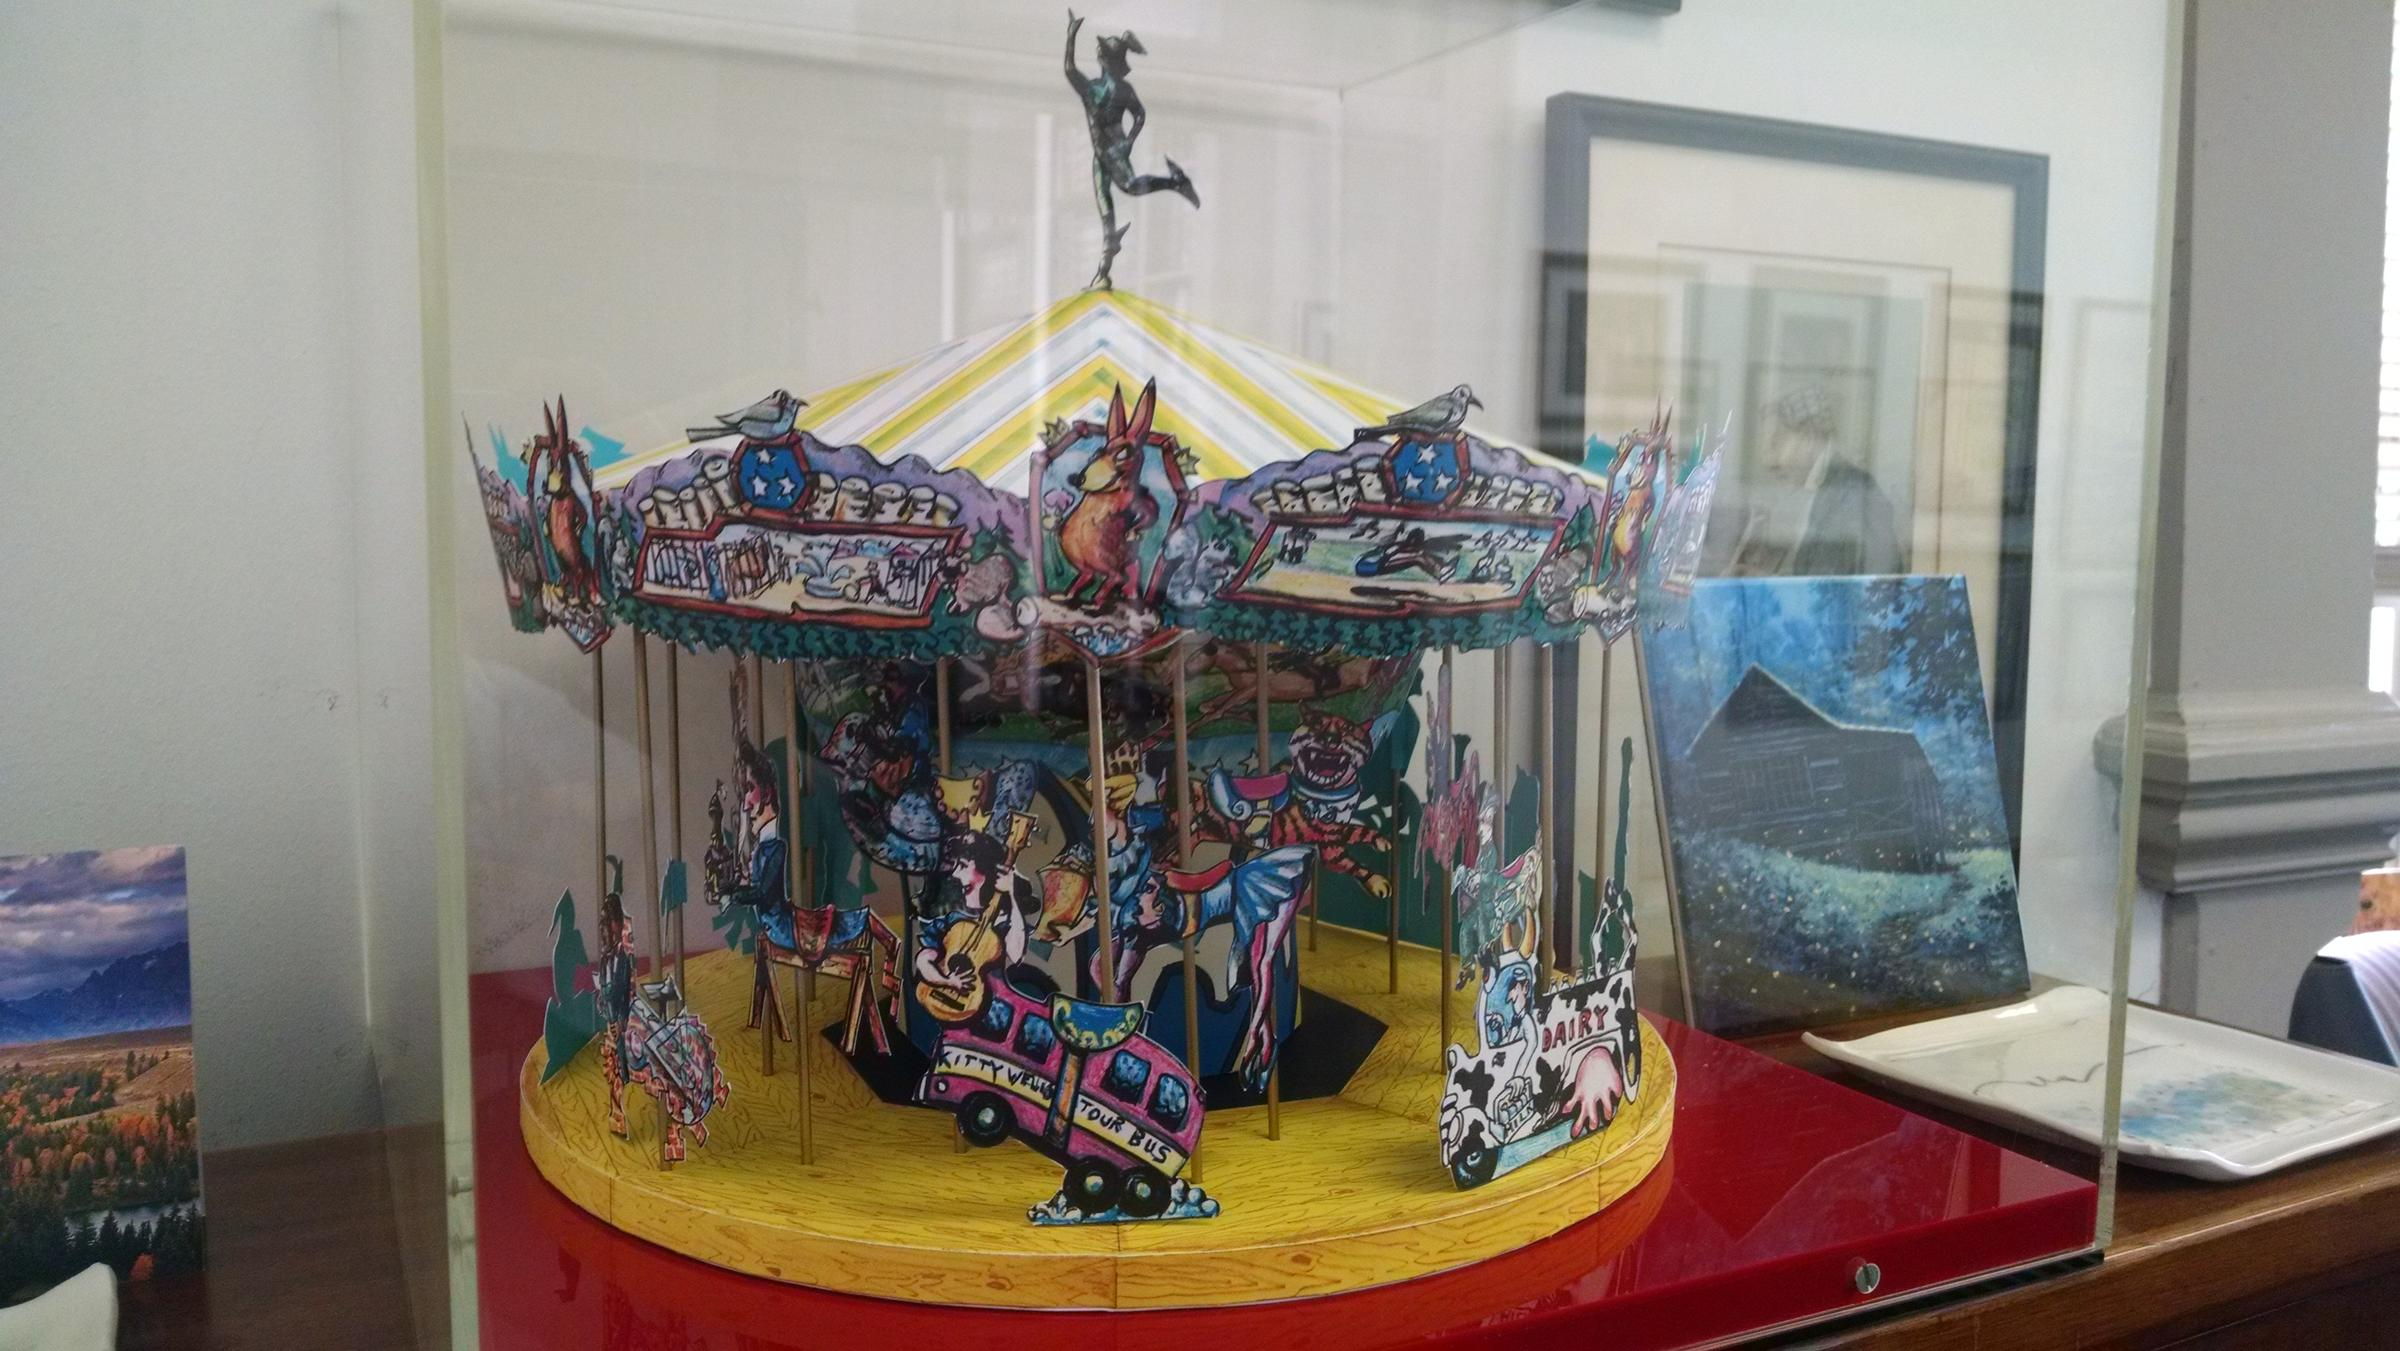 A Model In Nashville Lawyer Bob Tukes Office Shows What The Carousel Looks Like When Constructed